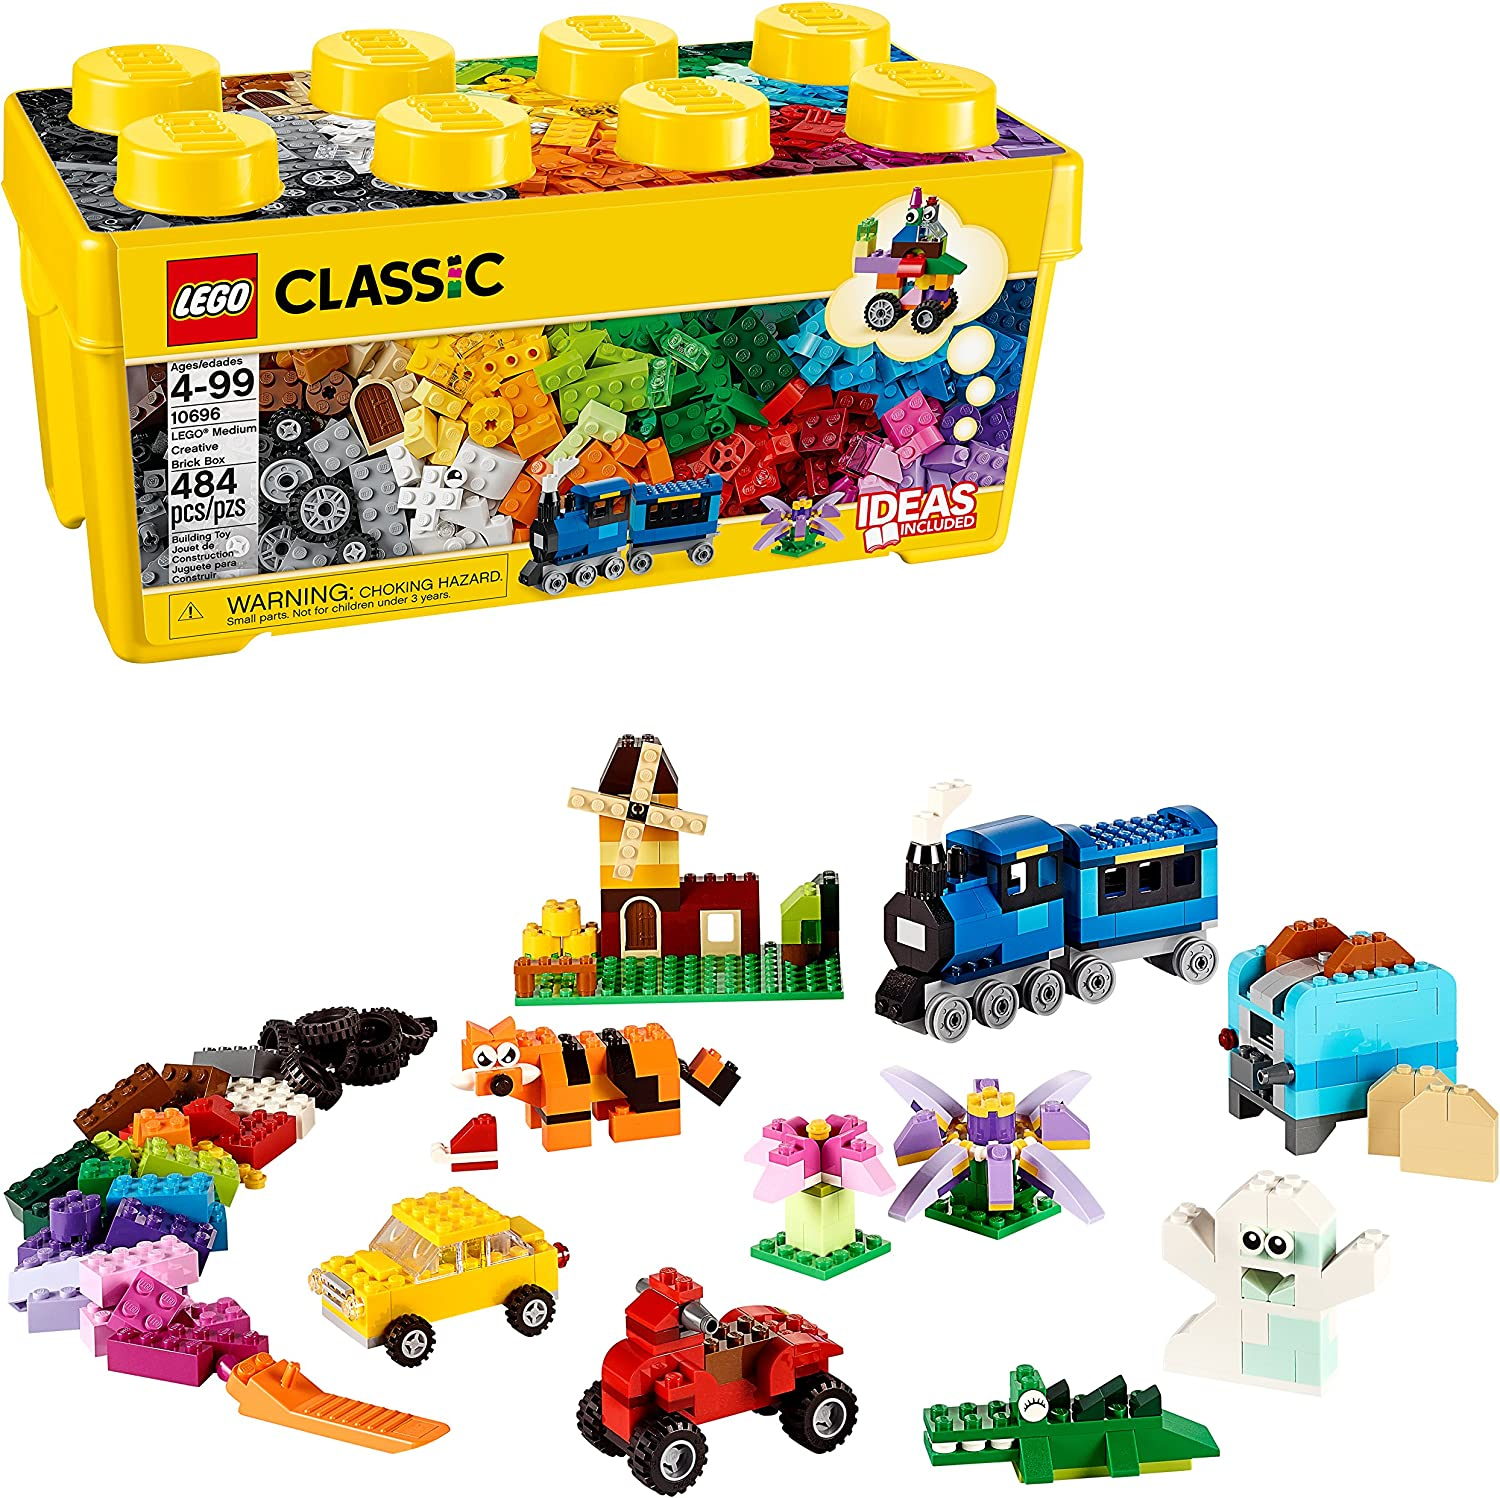 LEGO Classic Medium Creative Brick Box 10696 Building Toys for Creative Play; Kids Creative Kit (484 Pieces): Toys & Games